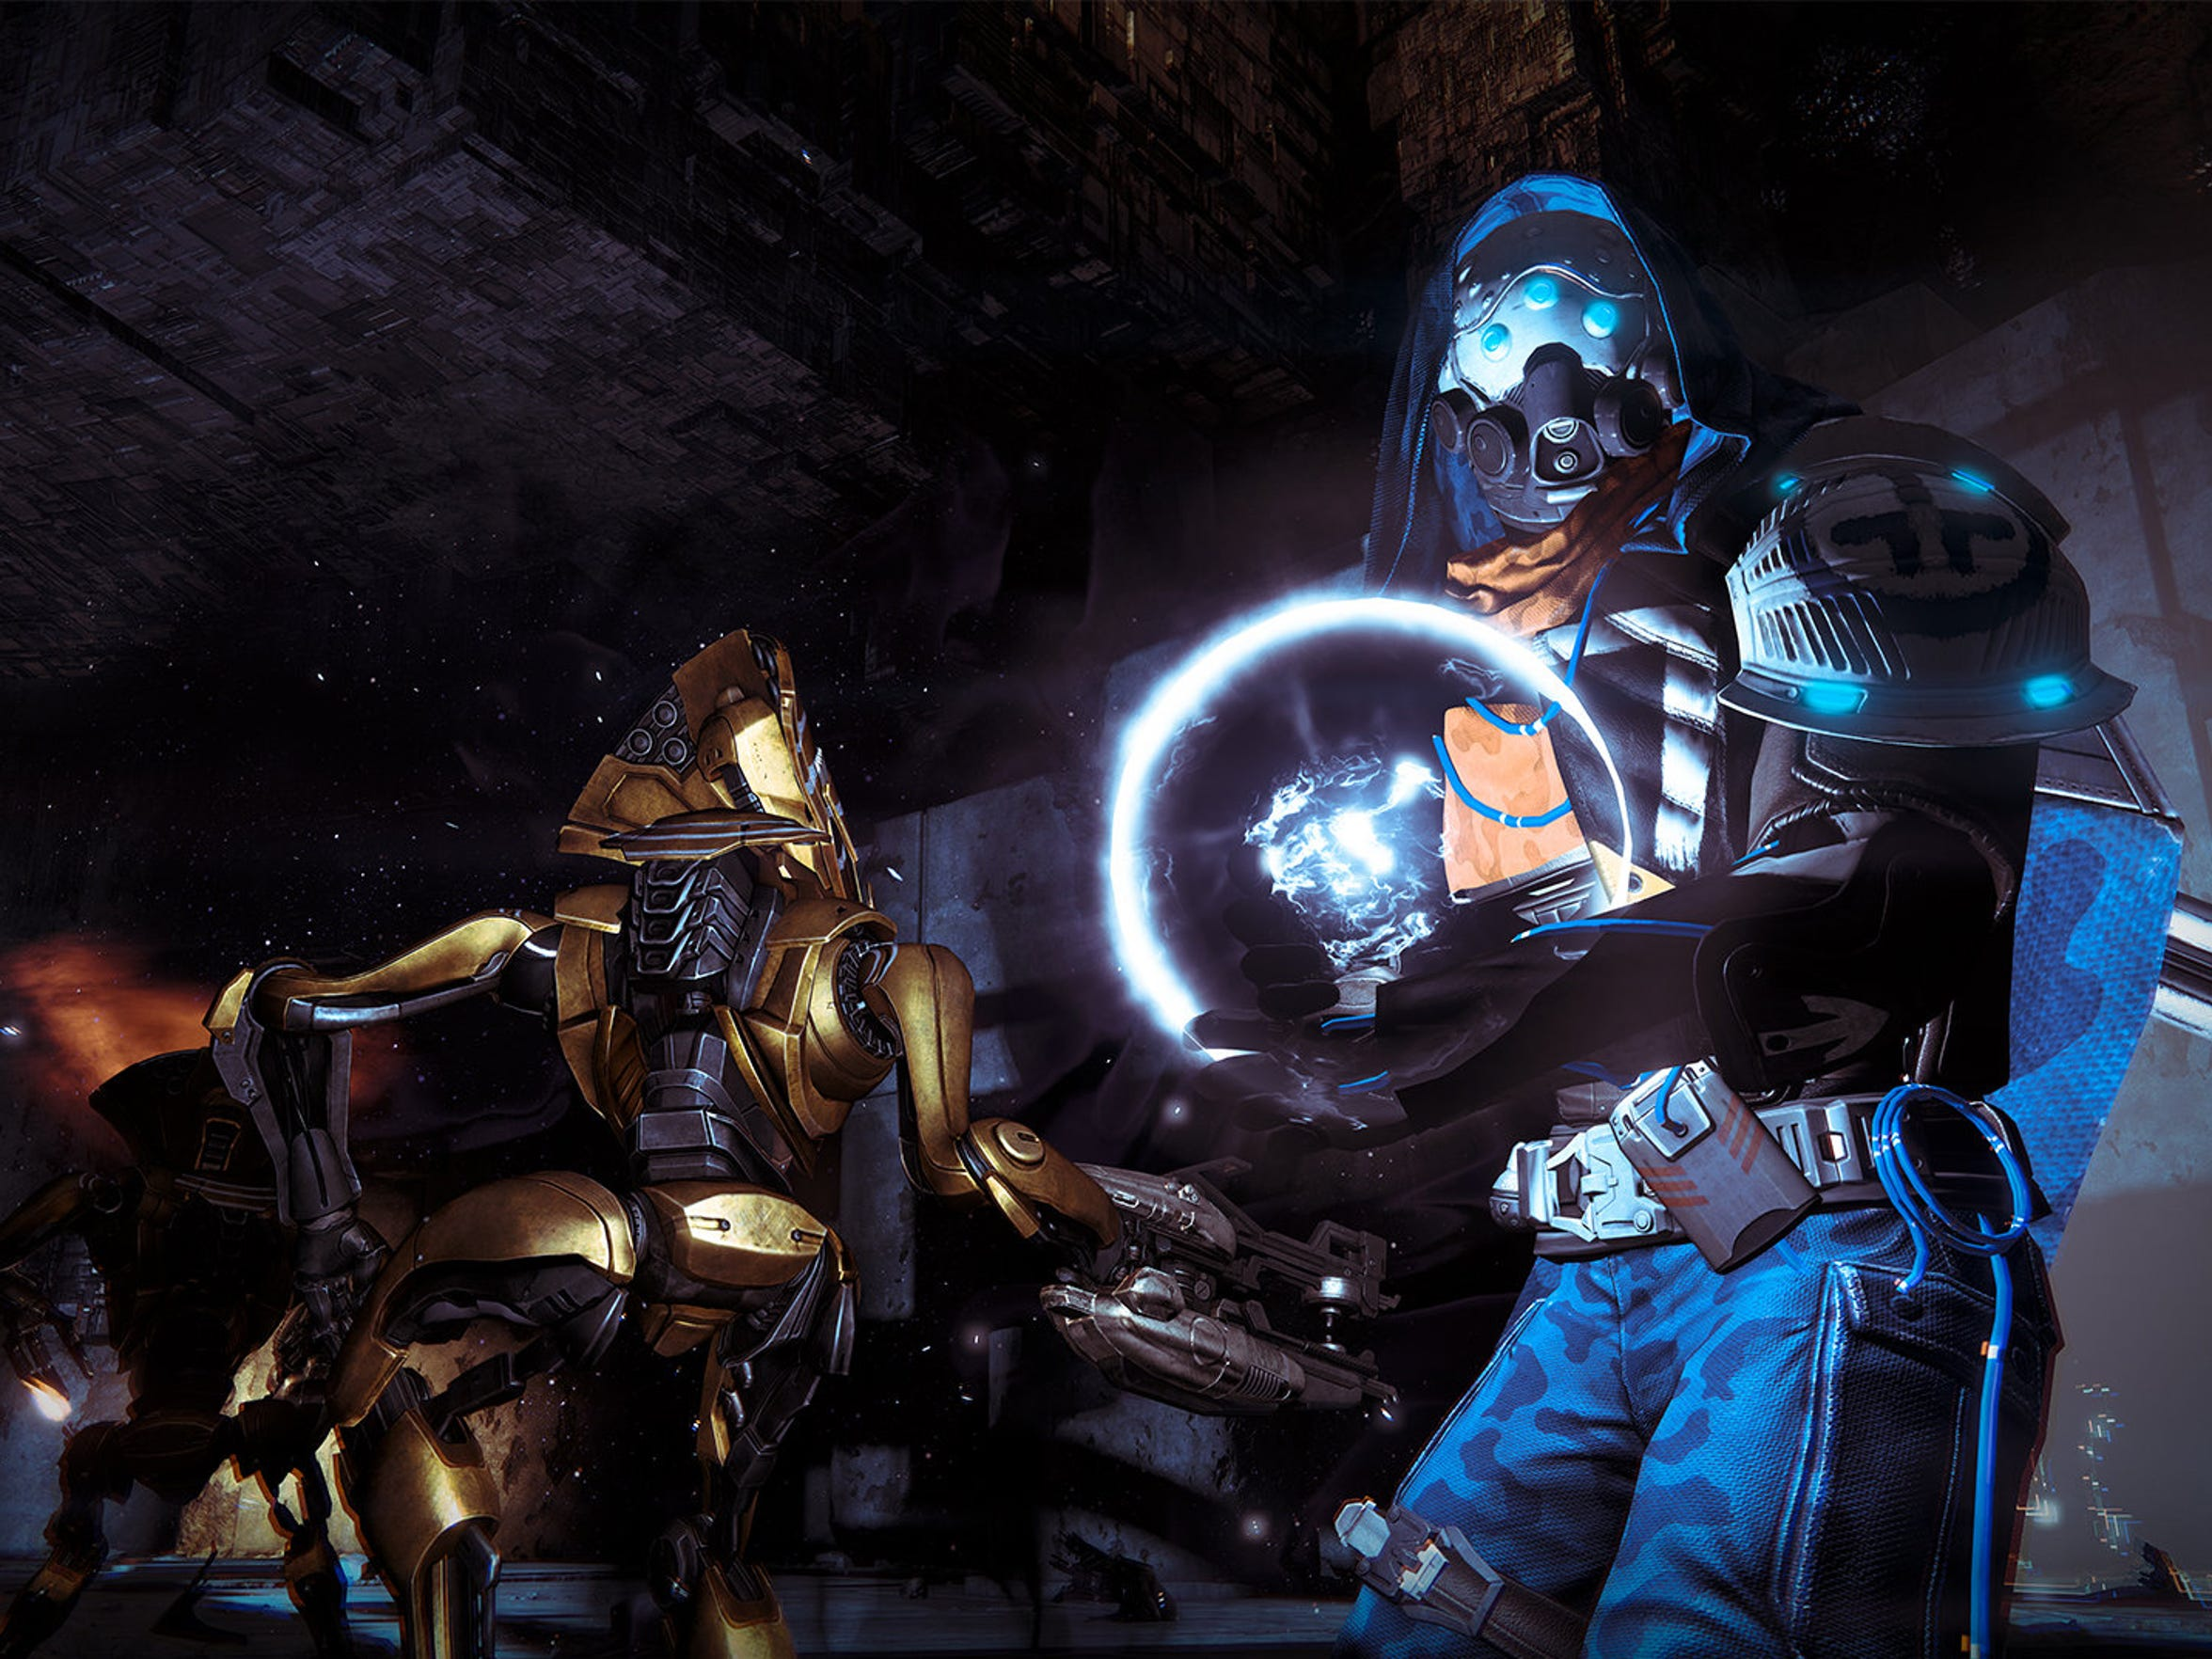 """Battle a new evil in the """"Destiny: The Taken King"""""""